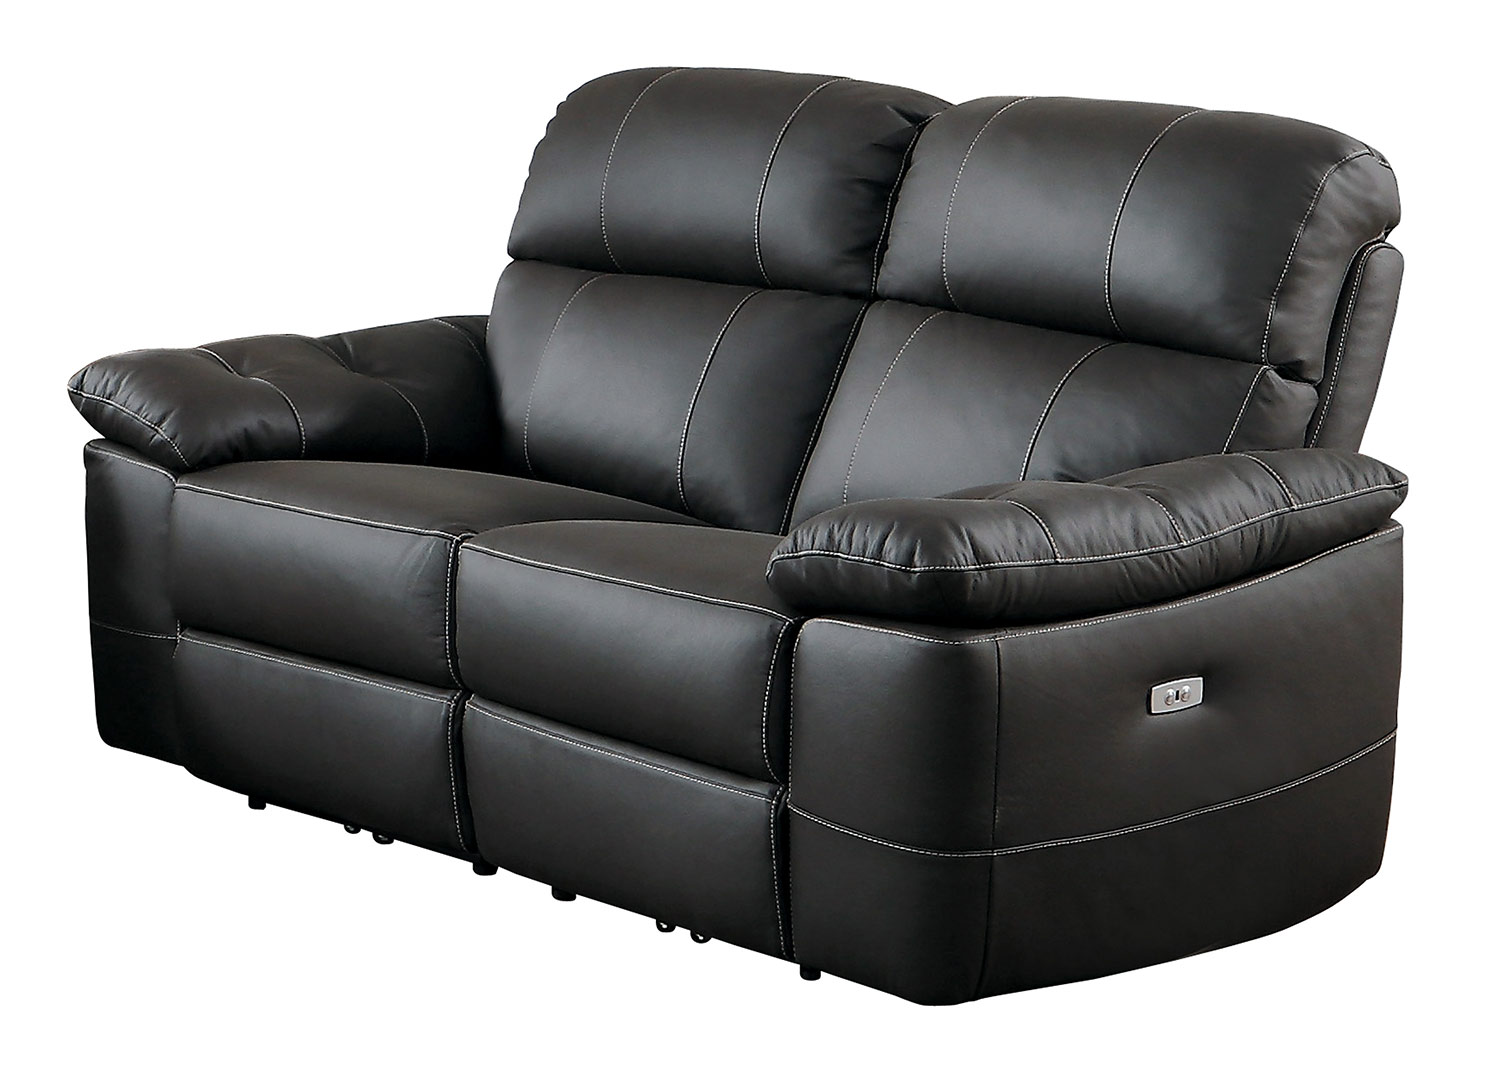 Homelegance Nicasio Power Double Reclining Love Seat - Dark Brown Leather